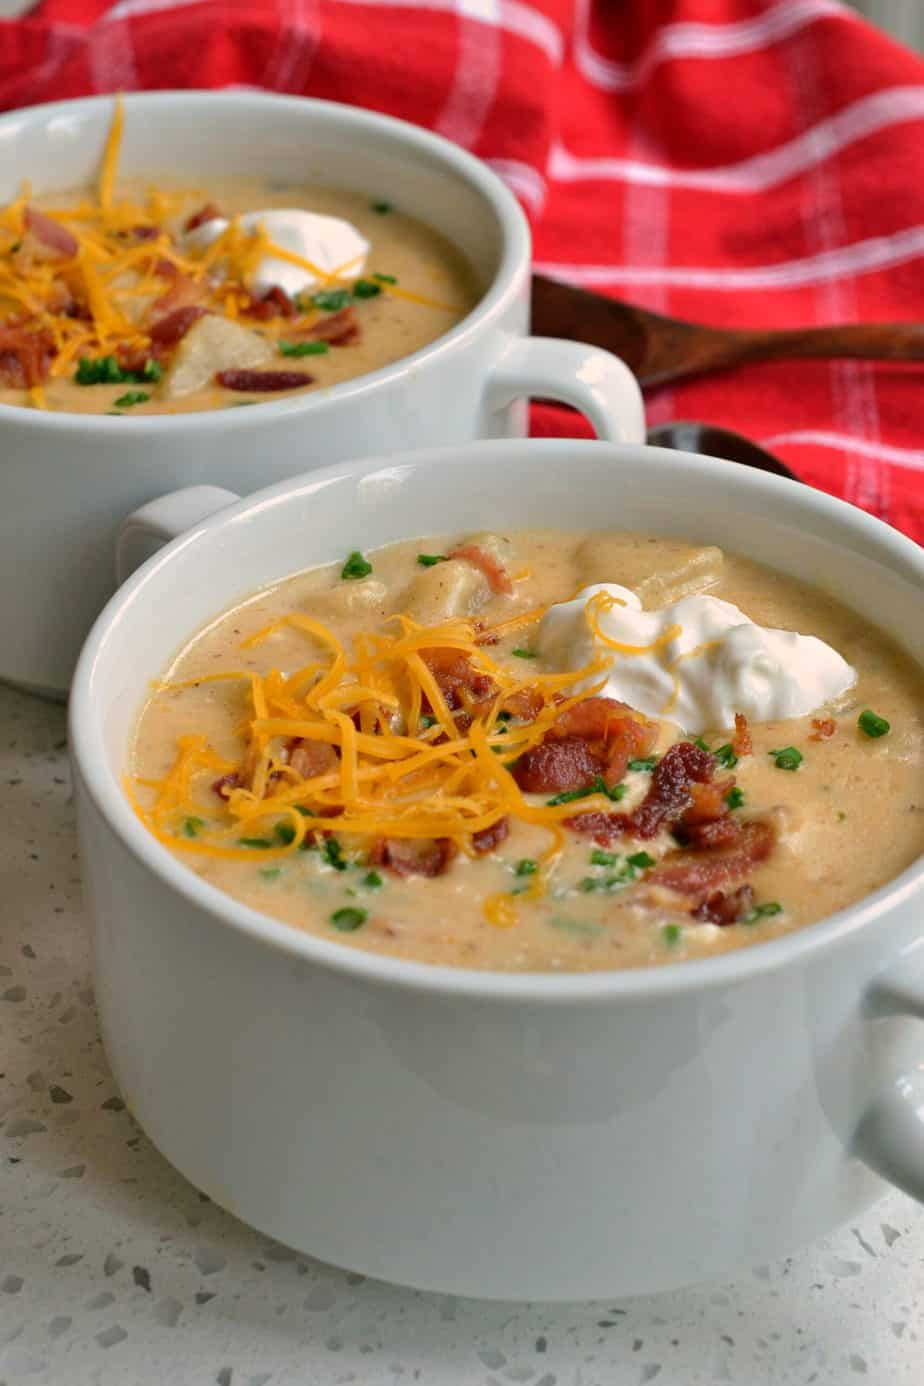 Loaded Potato Soup is a favorite in our house and a frequent request from my son.